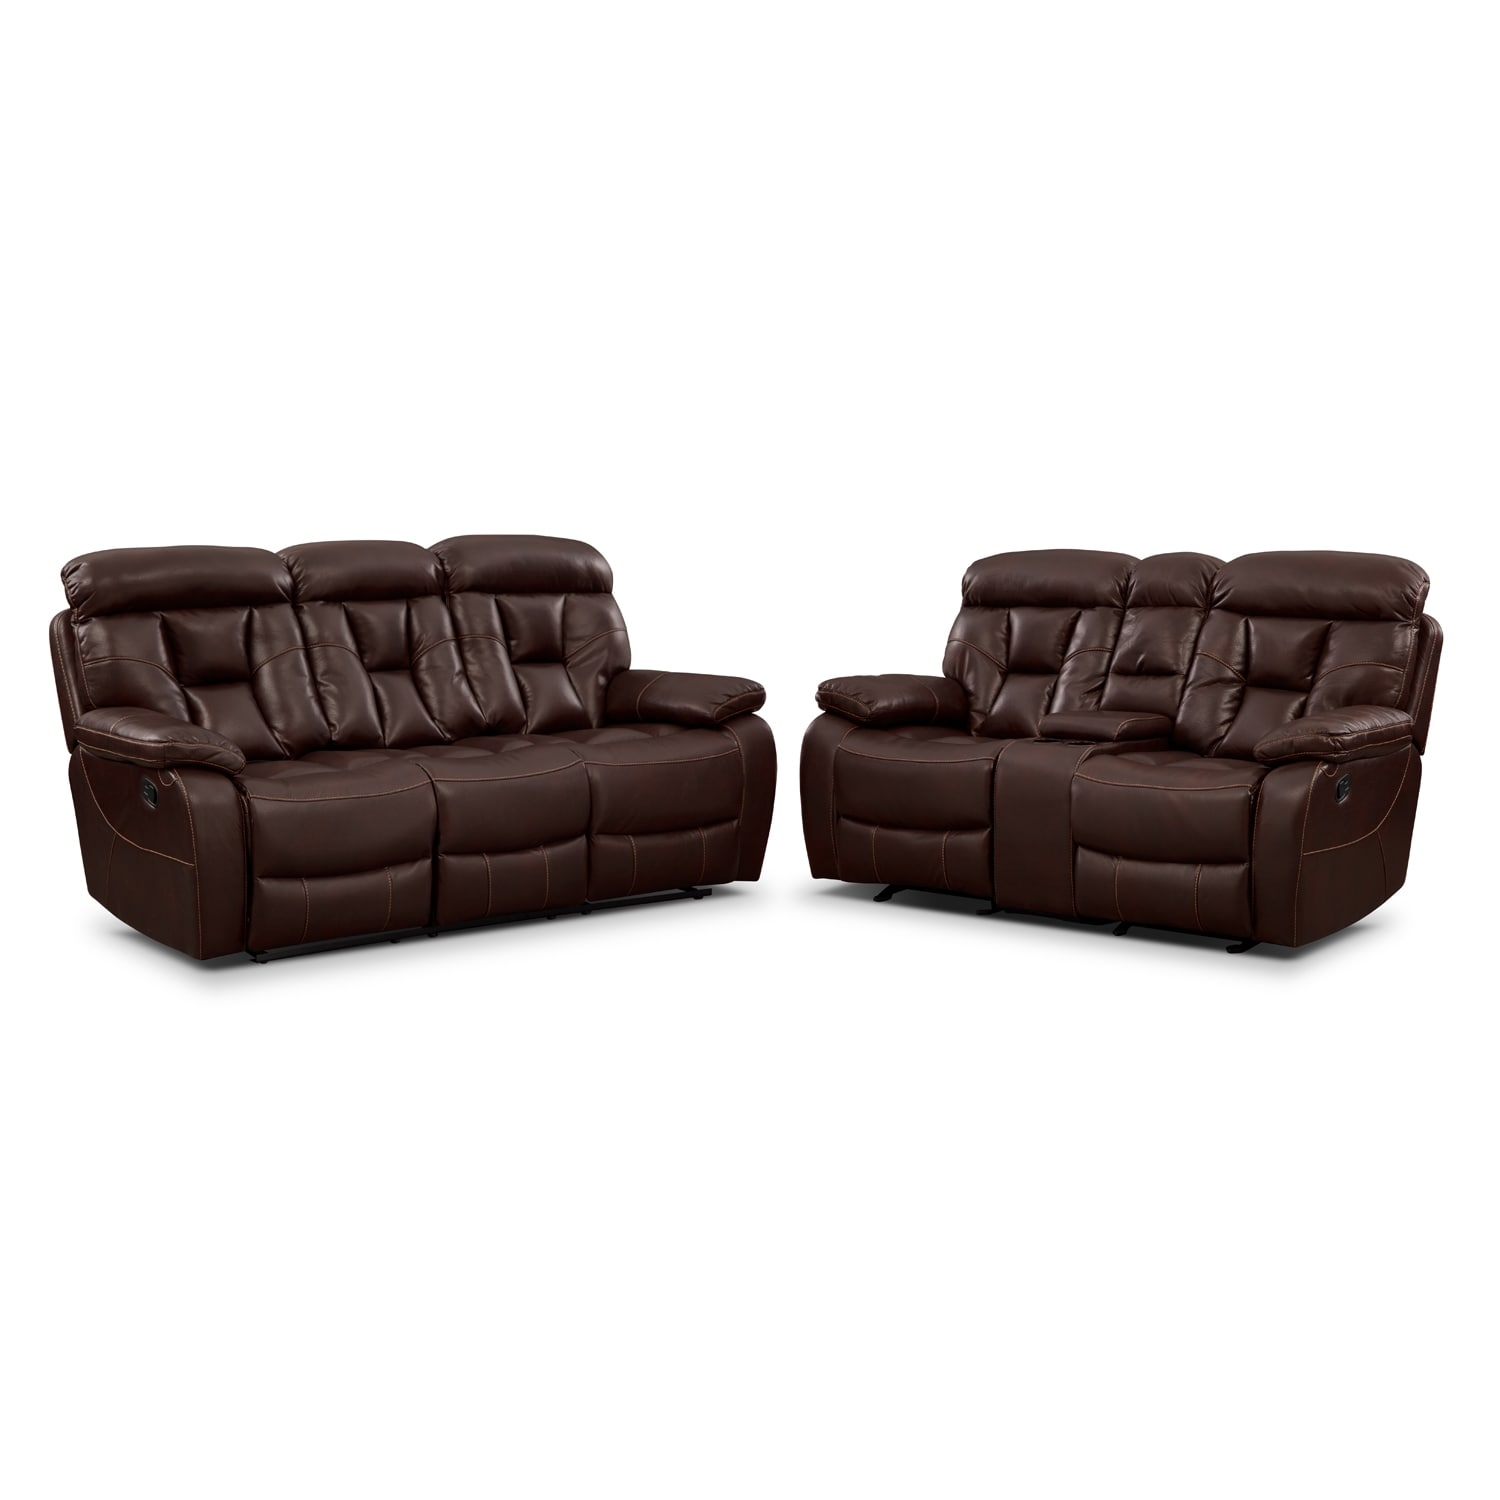 Dakota Reclining Sofa And Gliding Loveseat Set Java Value City Furniture